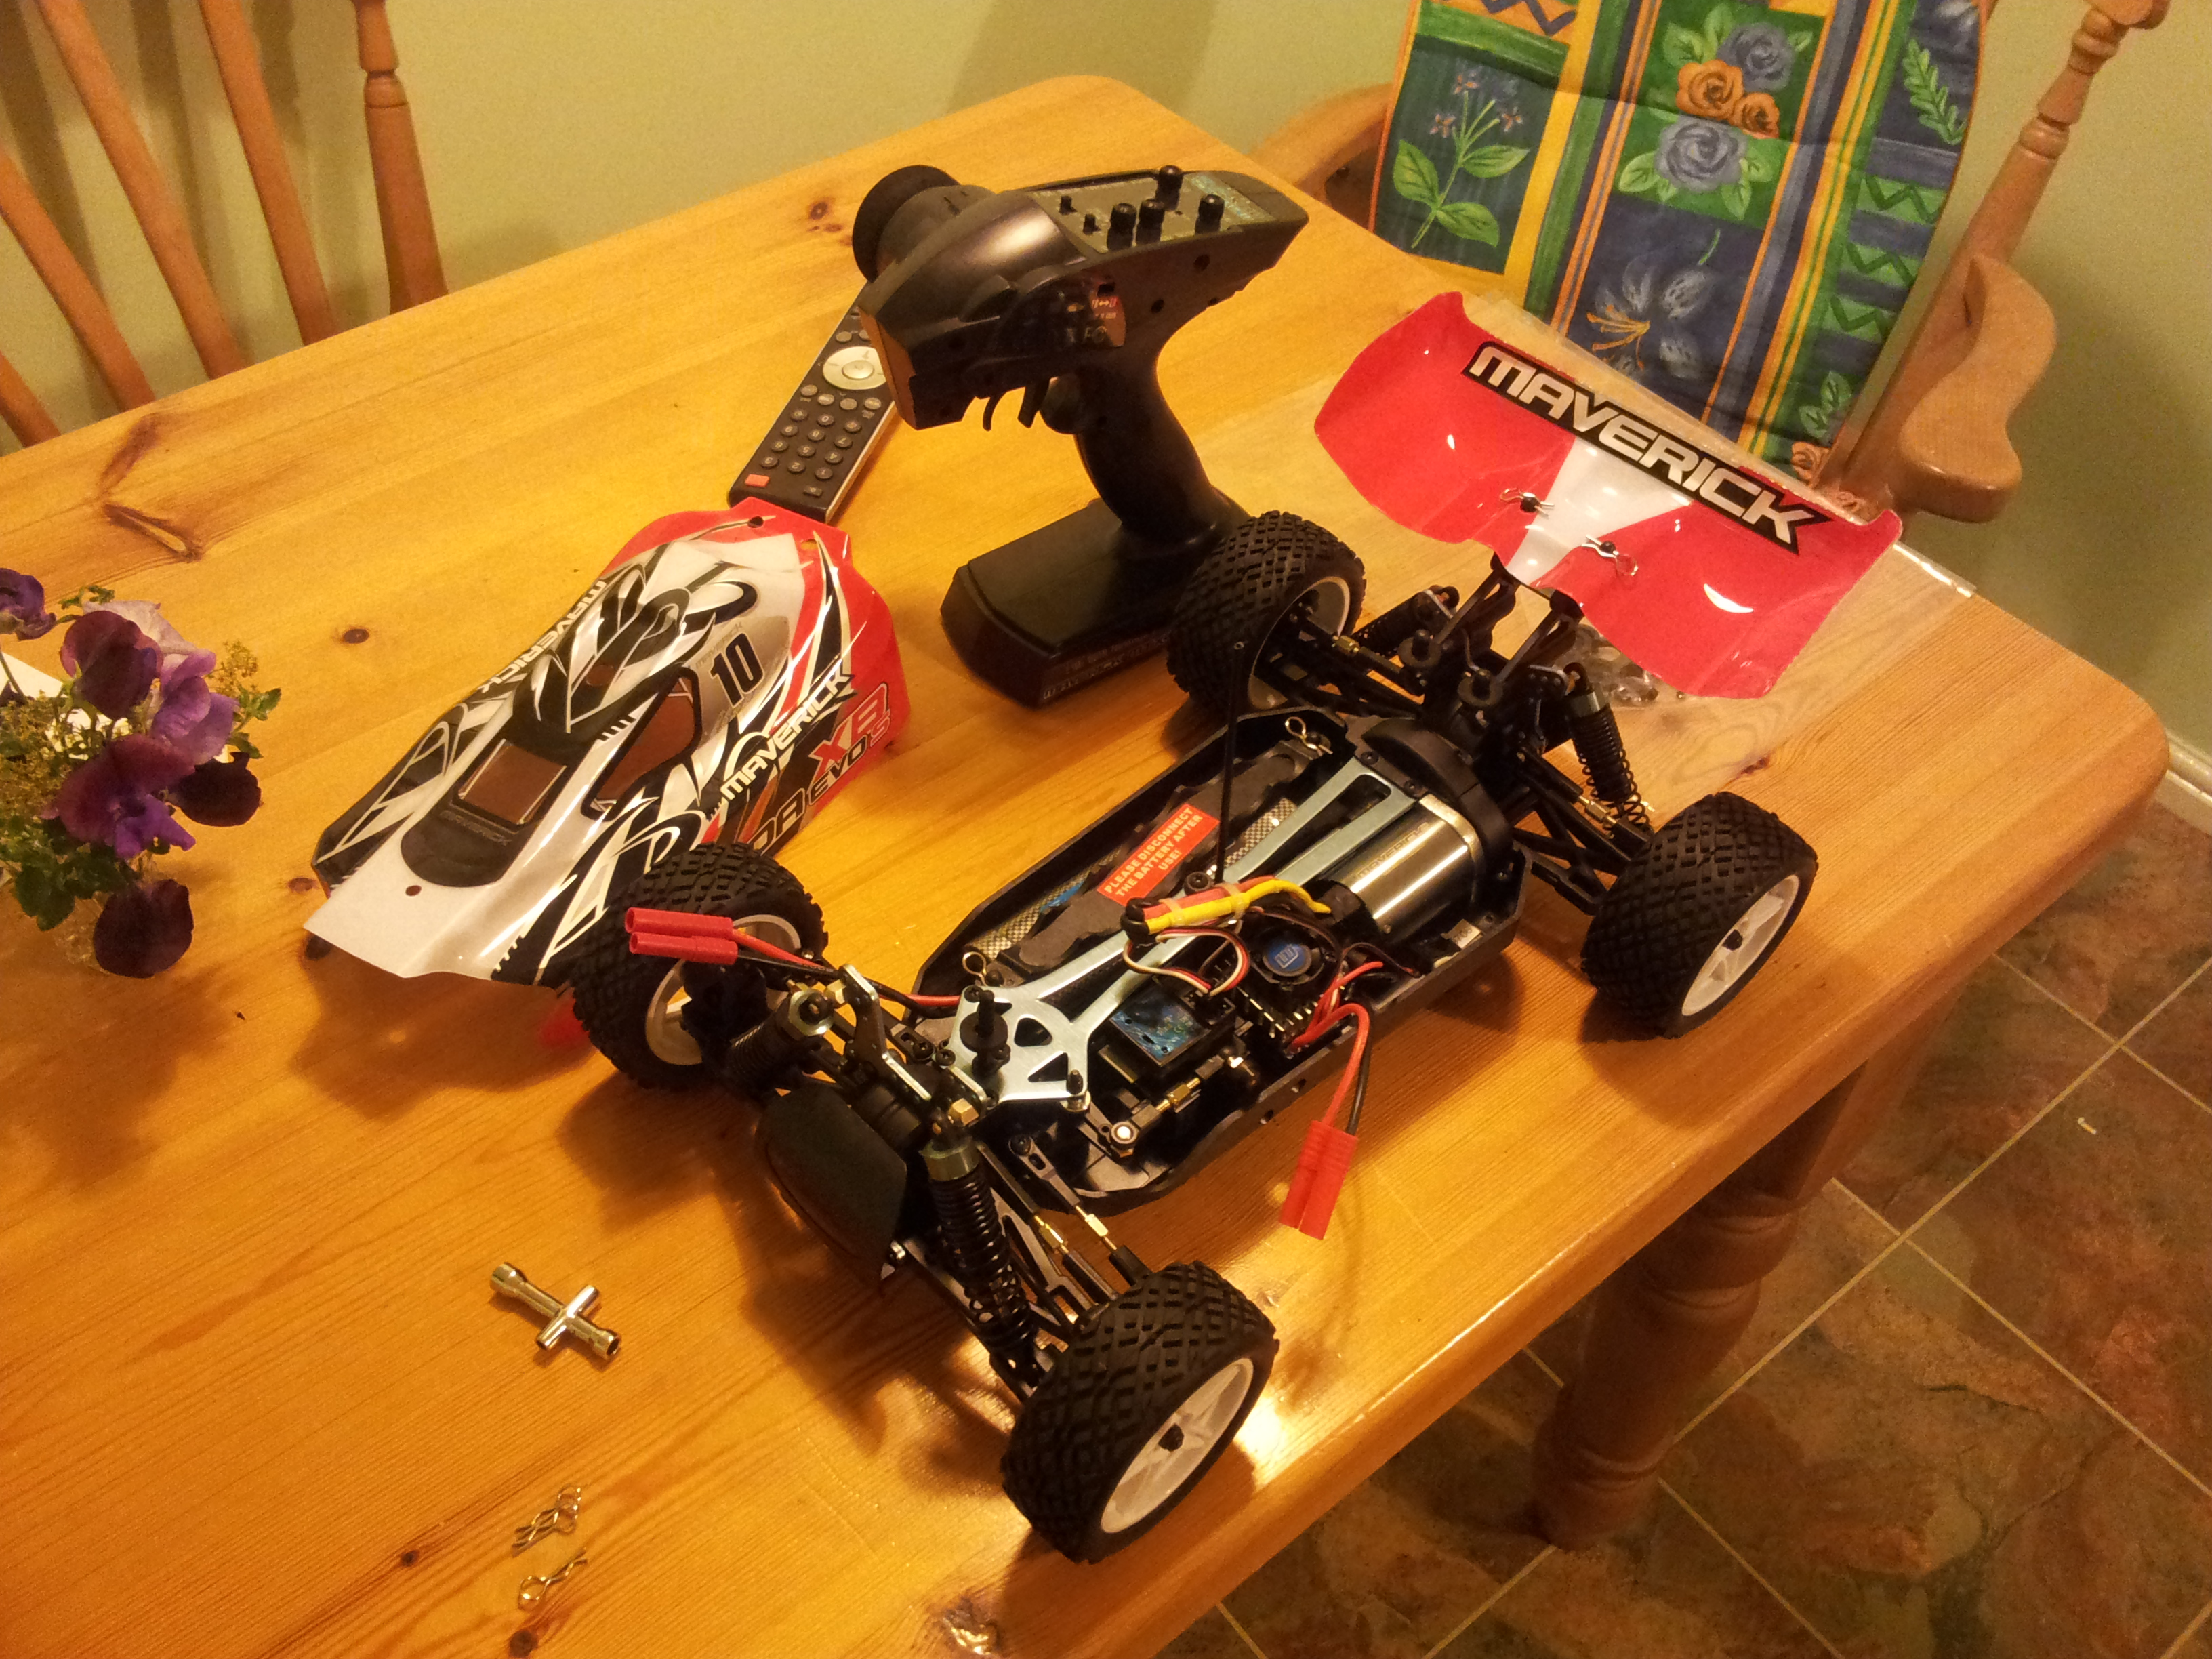 The buggy is my favorite while the supa stox is very controlled and no drama to drive the buggy is absolutely insane i can also it to go faster on a